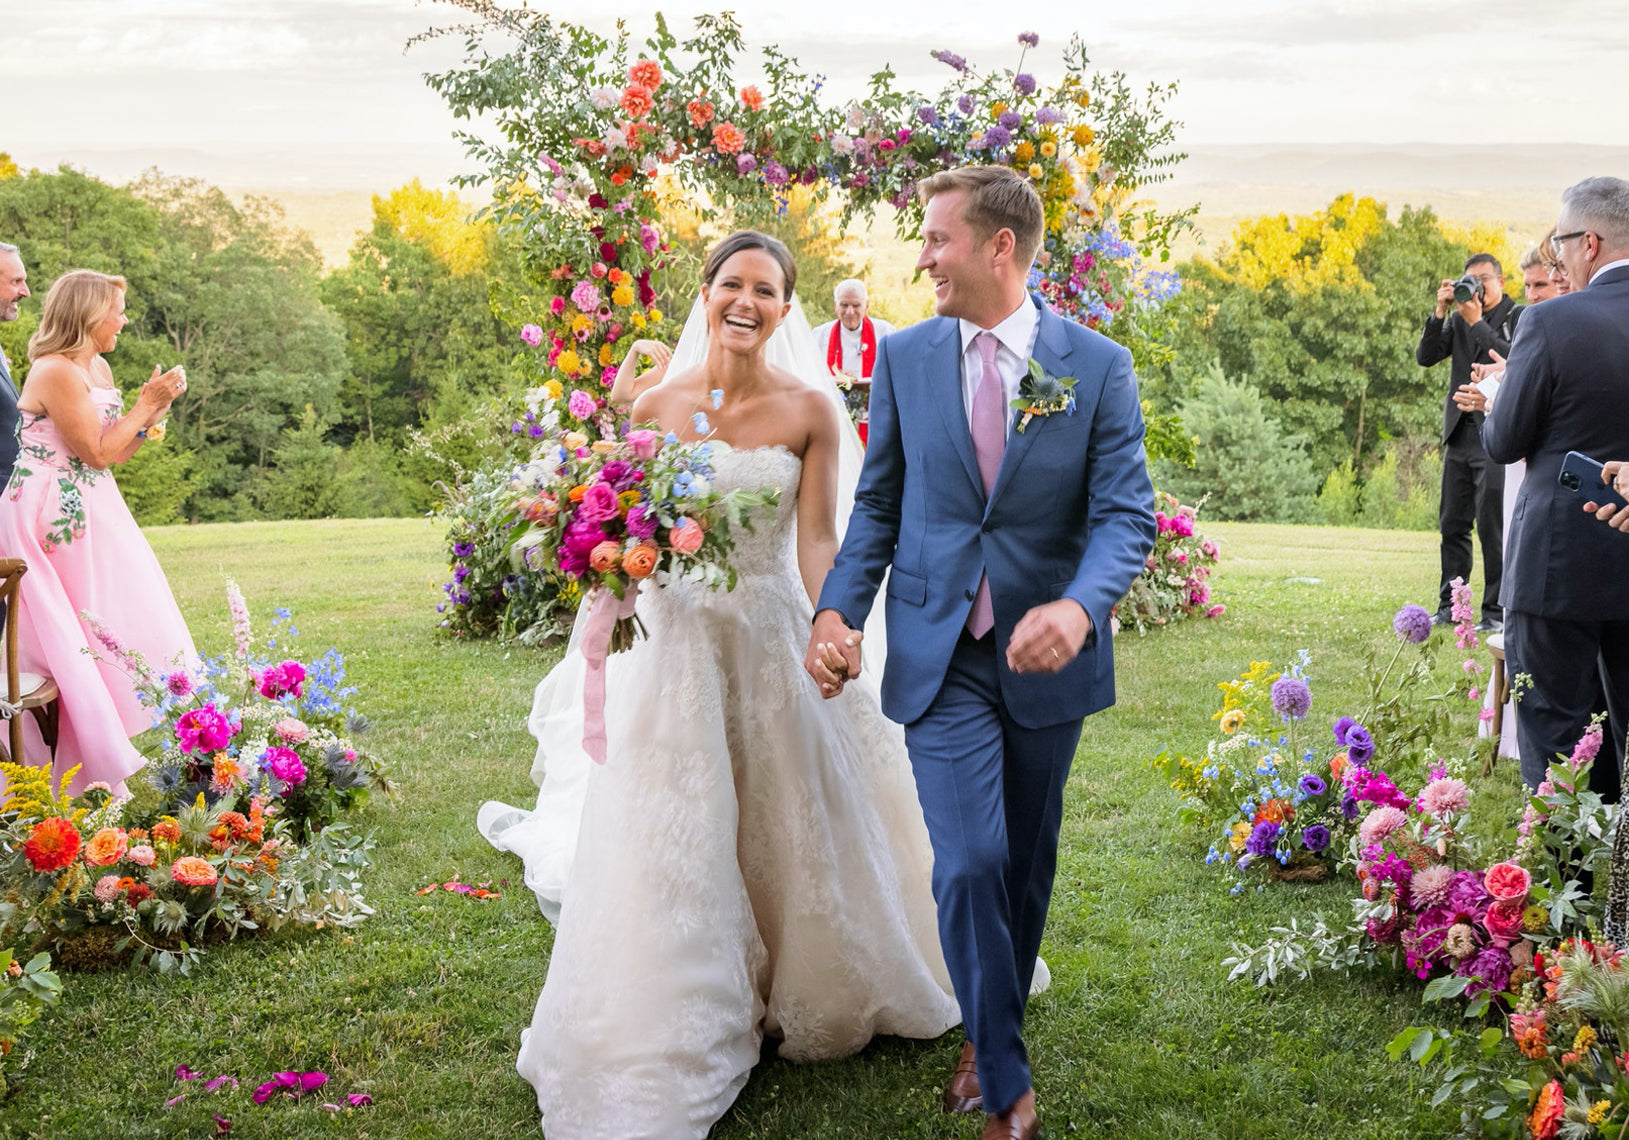 Colorful floral arbor at Cedar Lakes by Tin Can Studios for Ellie Monahan